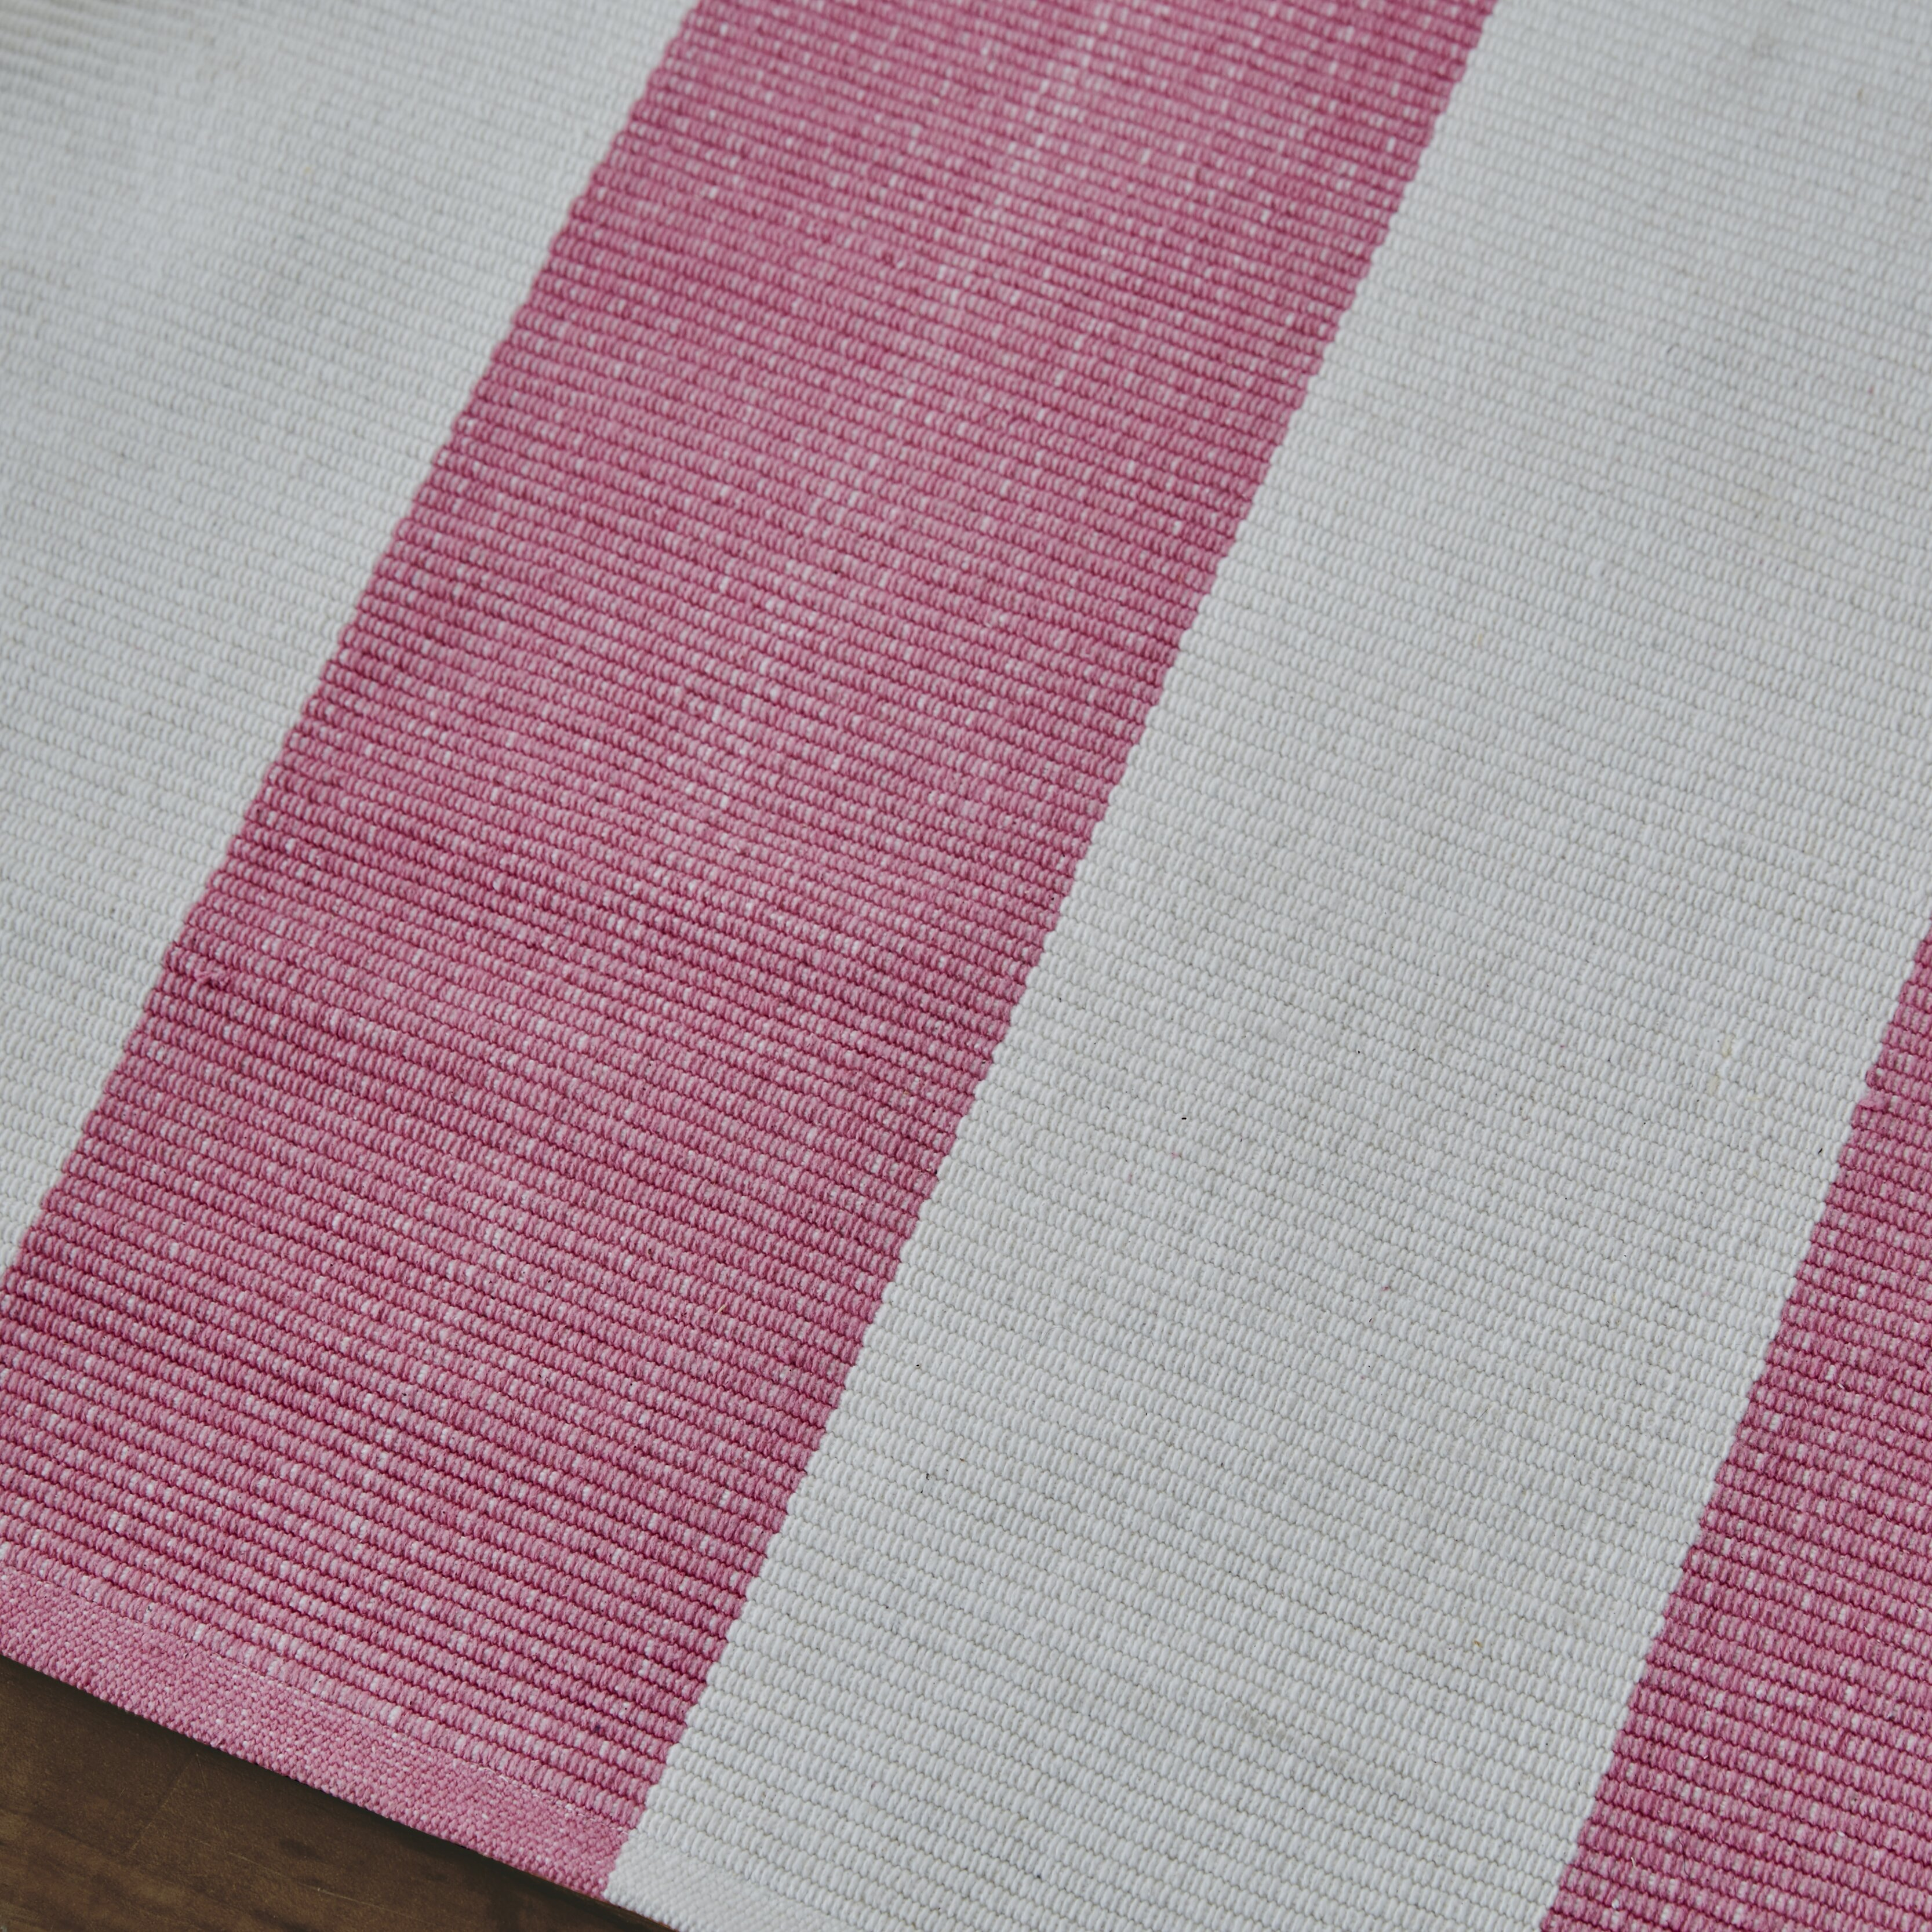 Dash And Albert Rugs Woven Pink Yacht Stripe Area Rug